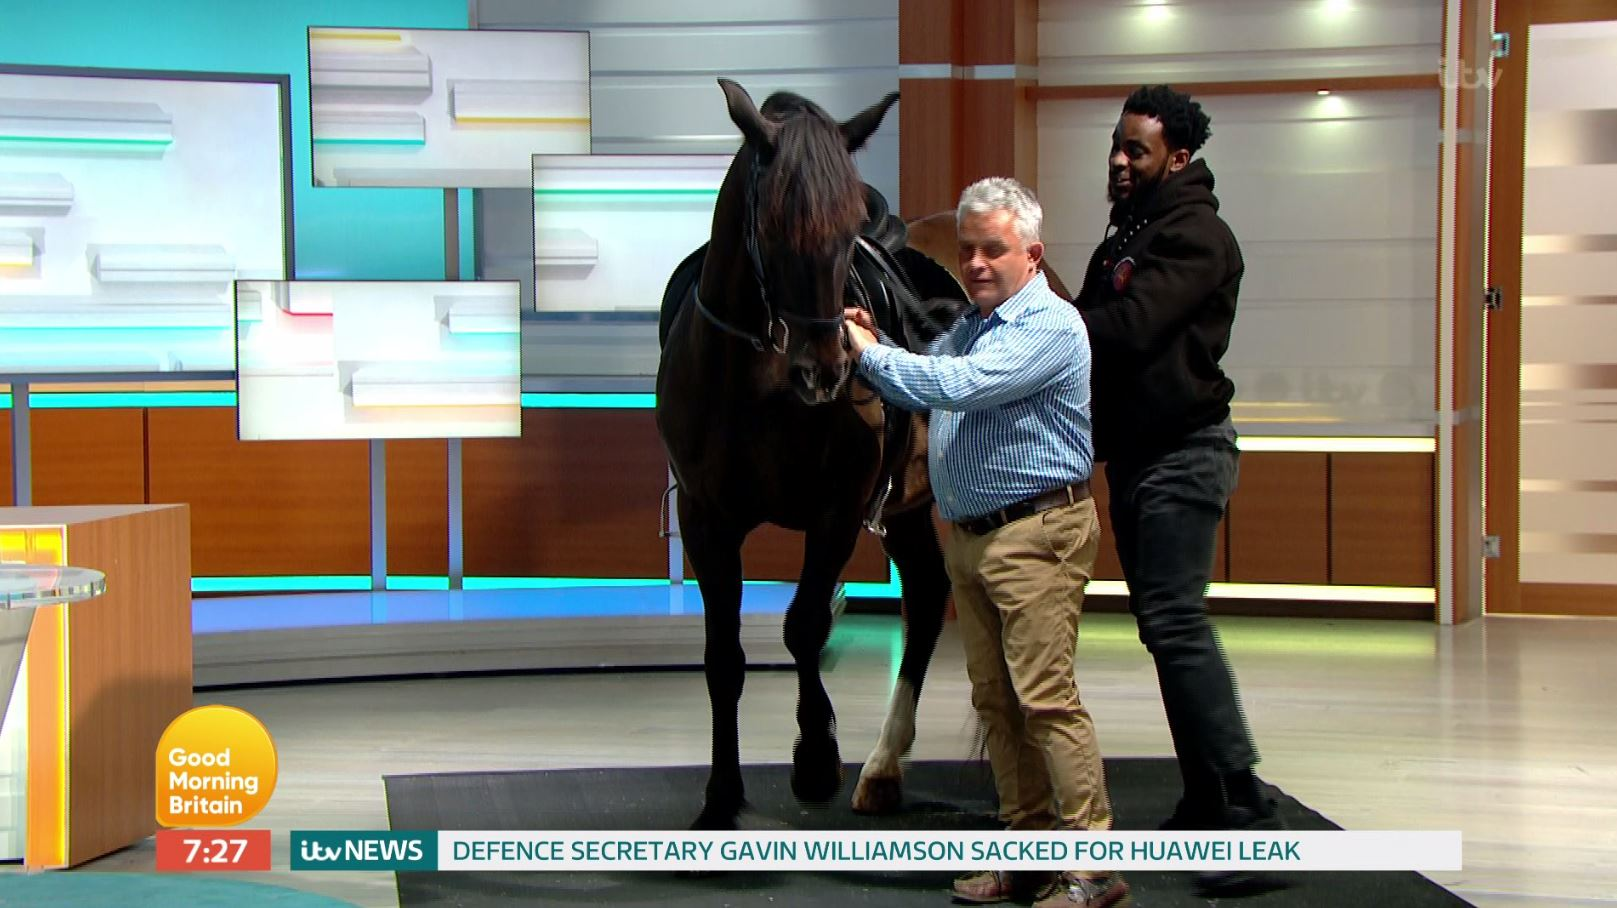 This guy just rode his horse into Good Morning Britain and we're here for it